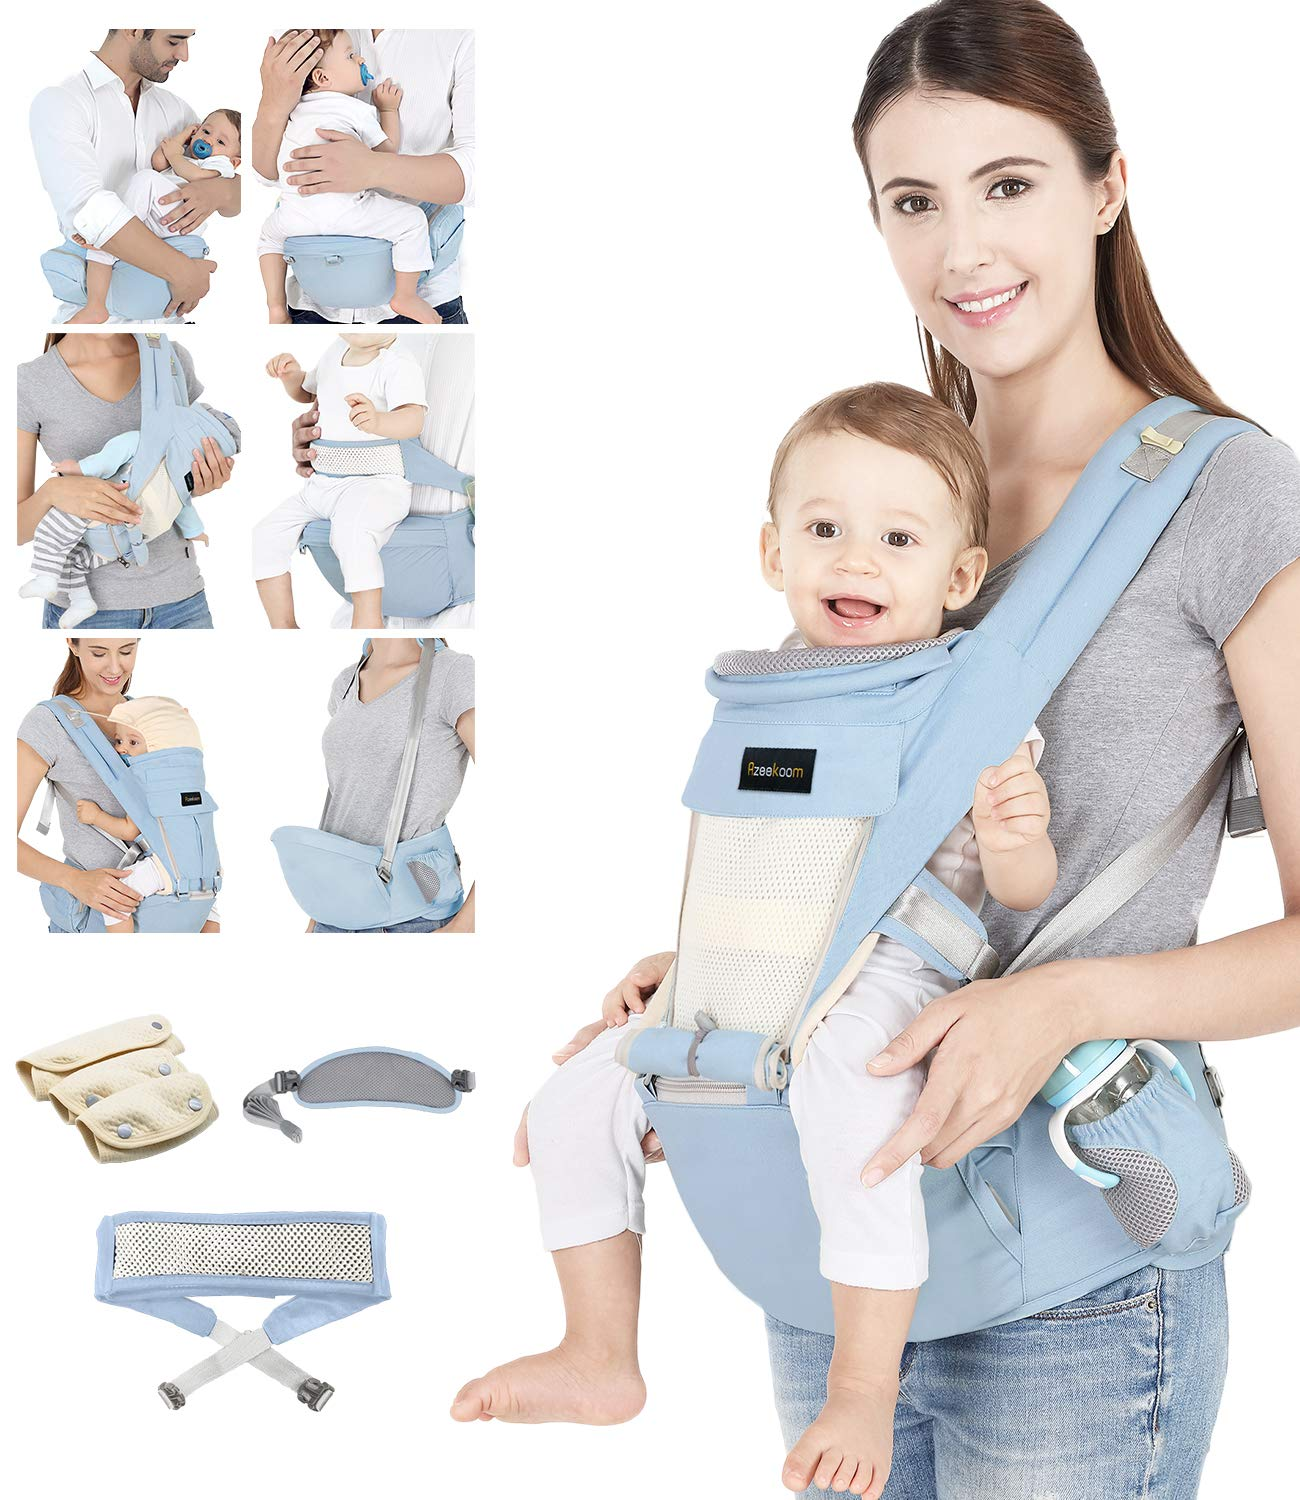 Azeekoom Baby Carrier, Ergonomic Hip Seat, Baby Carrier Sling with Fixing Strap, Bibs, Shoulder Strap, Head Hood for Newborn to Toddler from 0-36 Month (Light Blue)  【More Ergonomic】 - Baby carrier for newborn has an enlarged arc stool to better support the baby's thighs, the M design that allows the knees to be higher than the buttocks when your baby sits, is more ergonomic.The silicone granules on the stool provide a high-quality anti-slip effect that prevents the baby from slipping off the stool. 【Various Methods of Carrying】- There are 5 combinations of ergonomic baby carrier and a variety of ways to wear them.Hip Seat/Fixing Strap + Hip Seat/Shoulder Strap + Hip Seat/Strap + Hip Seat/Strap, 5 combinations to meet your needs.Fixing Strap frees your hands and prevent your baby from falling over the stool.The shoulder straps reduce the burden on your waist and make you more comfortable. 【More Comfortable】 - The baby carrier is made of high quality cotton fabric with 3D breathable mesh for comfort and coolness. The detachable sunshade provides warmth in winter and fresh in summer. The detachable cotton slobber allows you to Easy to change. At the same time, the zip closure is designed for easy removal and cleaning. 1